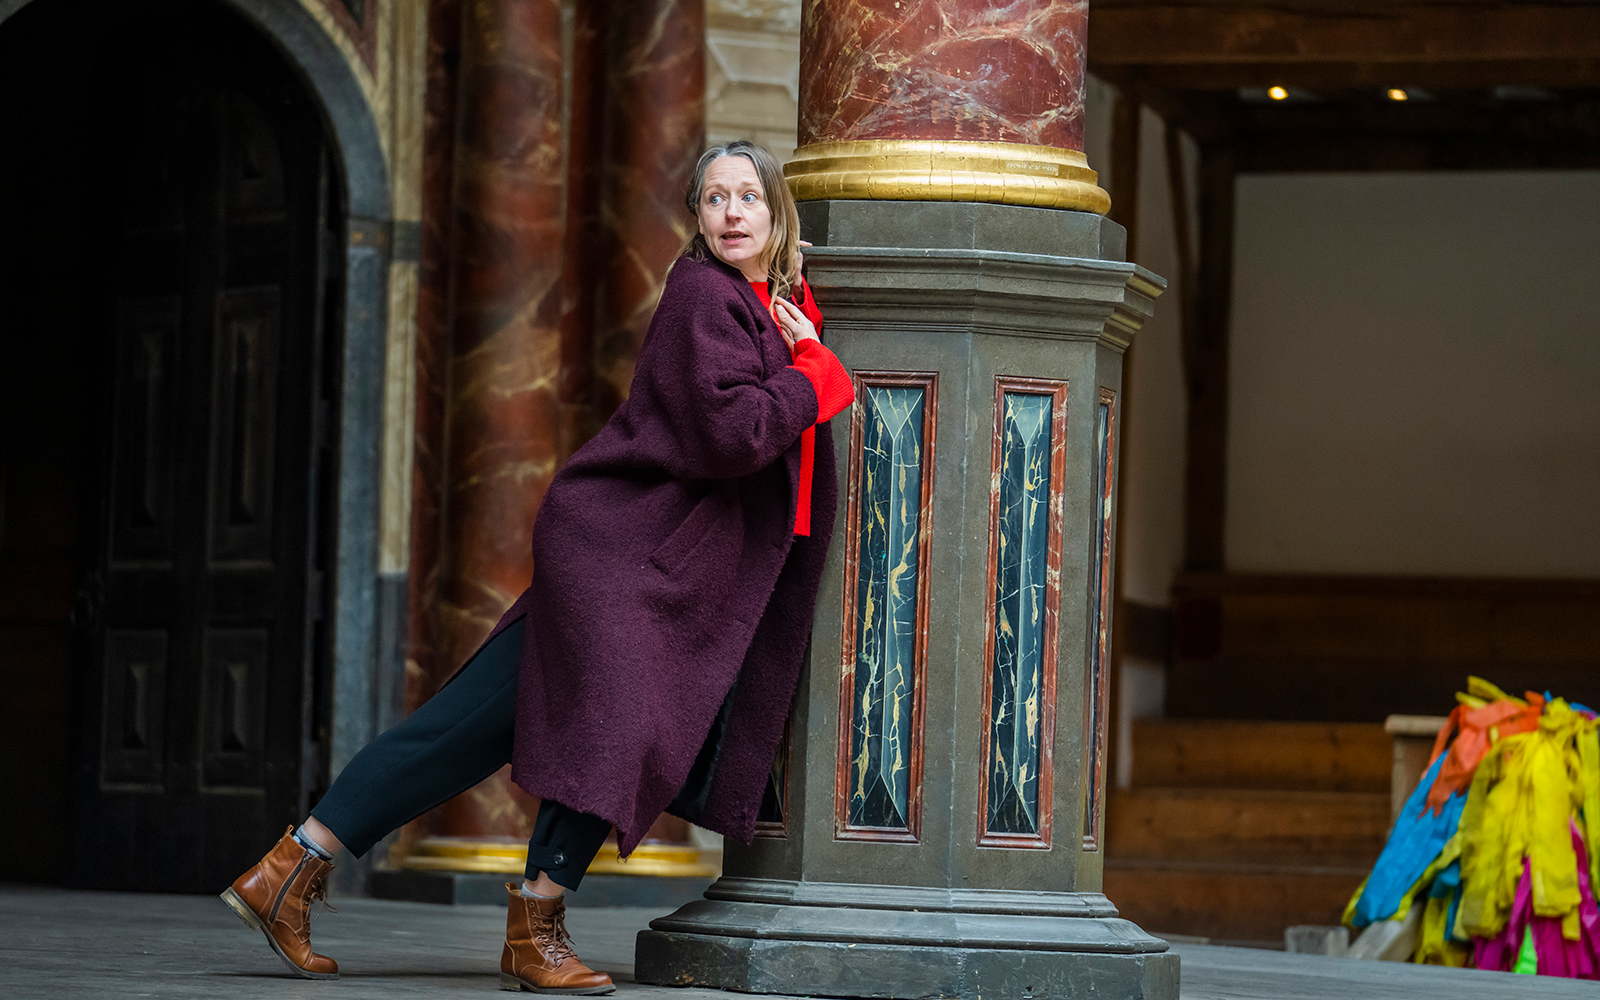 An actor wears a long, red coat and is leaning against a pillar on a stage